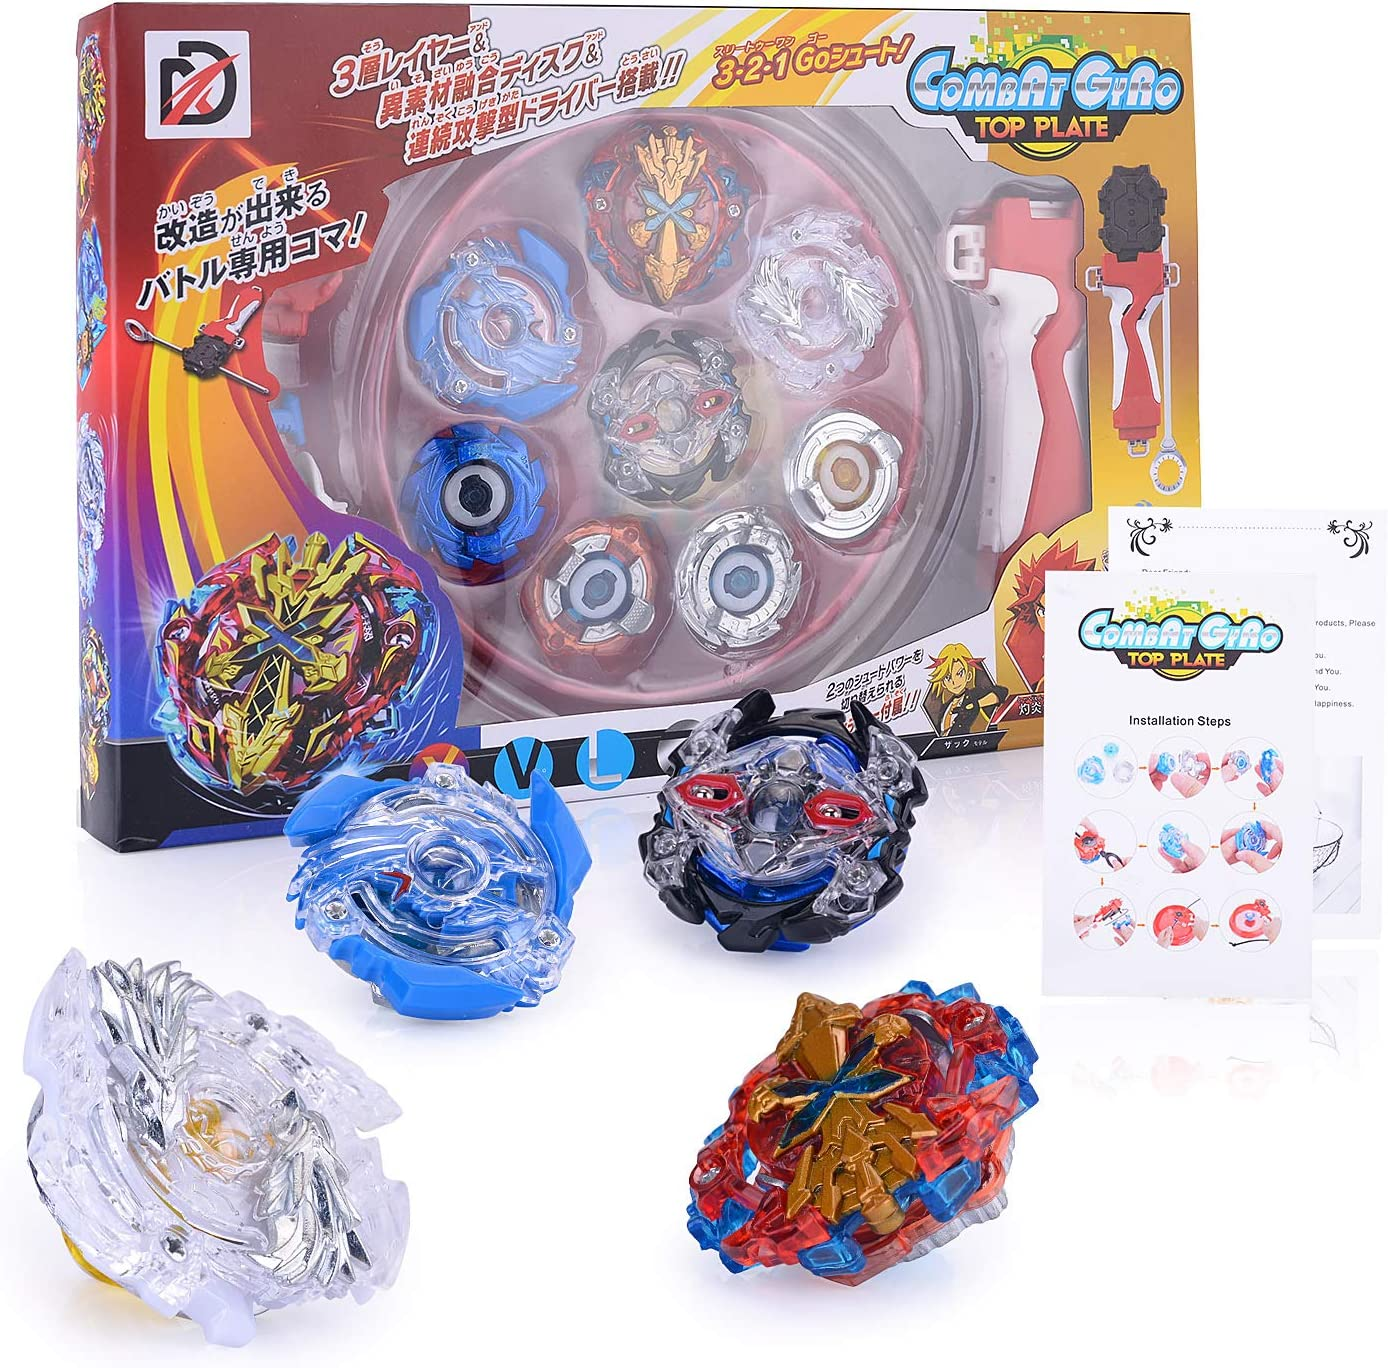 Surhomic Gyro Burst Peonzas, 4 Pcs Gyro Fight Master, Gyro Burst ...